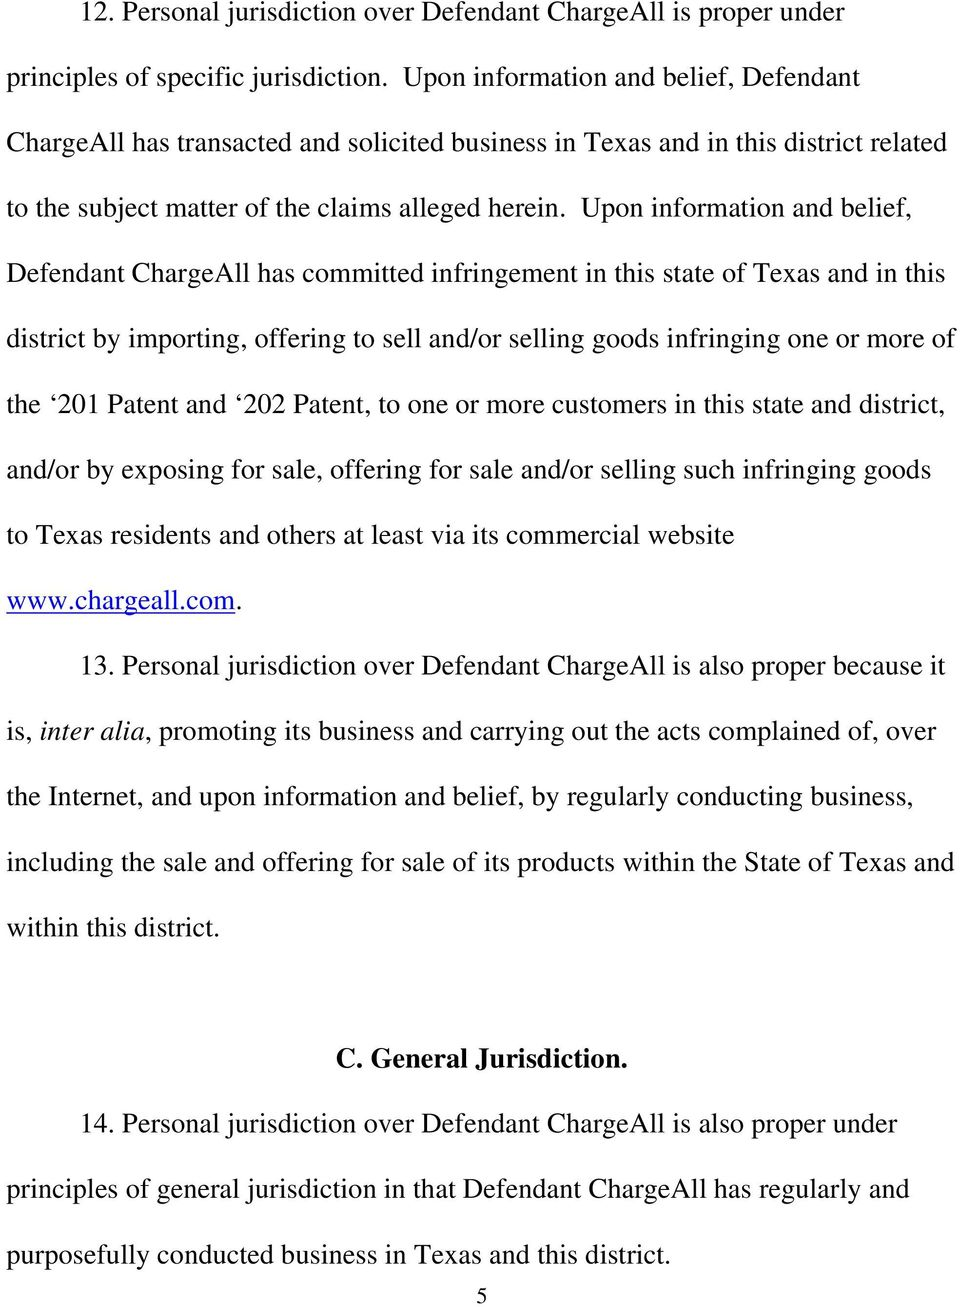 Upon information and belief, Defendant ChargeAll has committed infringement in this state of Texas and in this district by importing, offering to sell and/or selling goods infringing one or more of